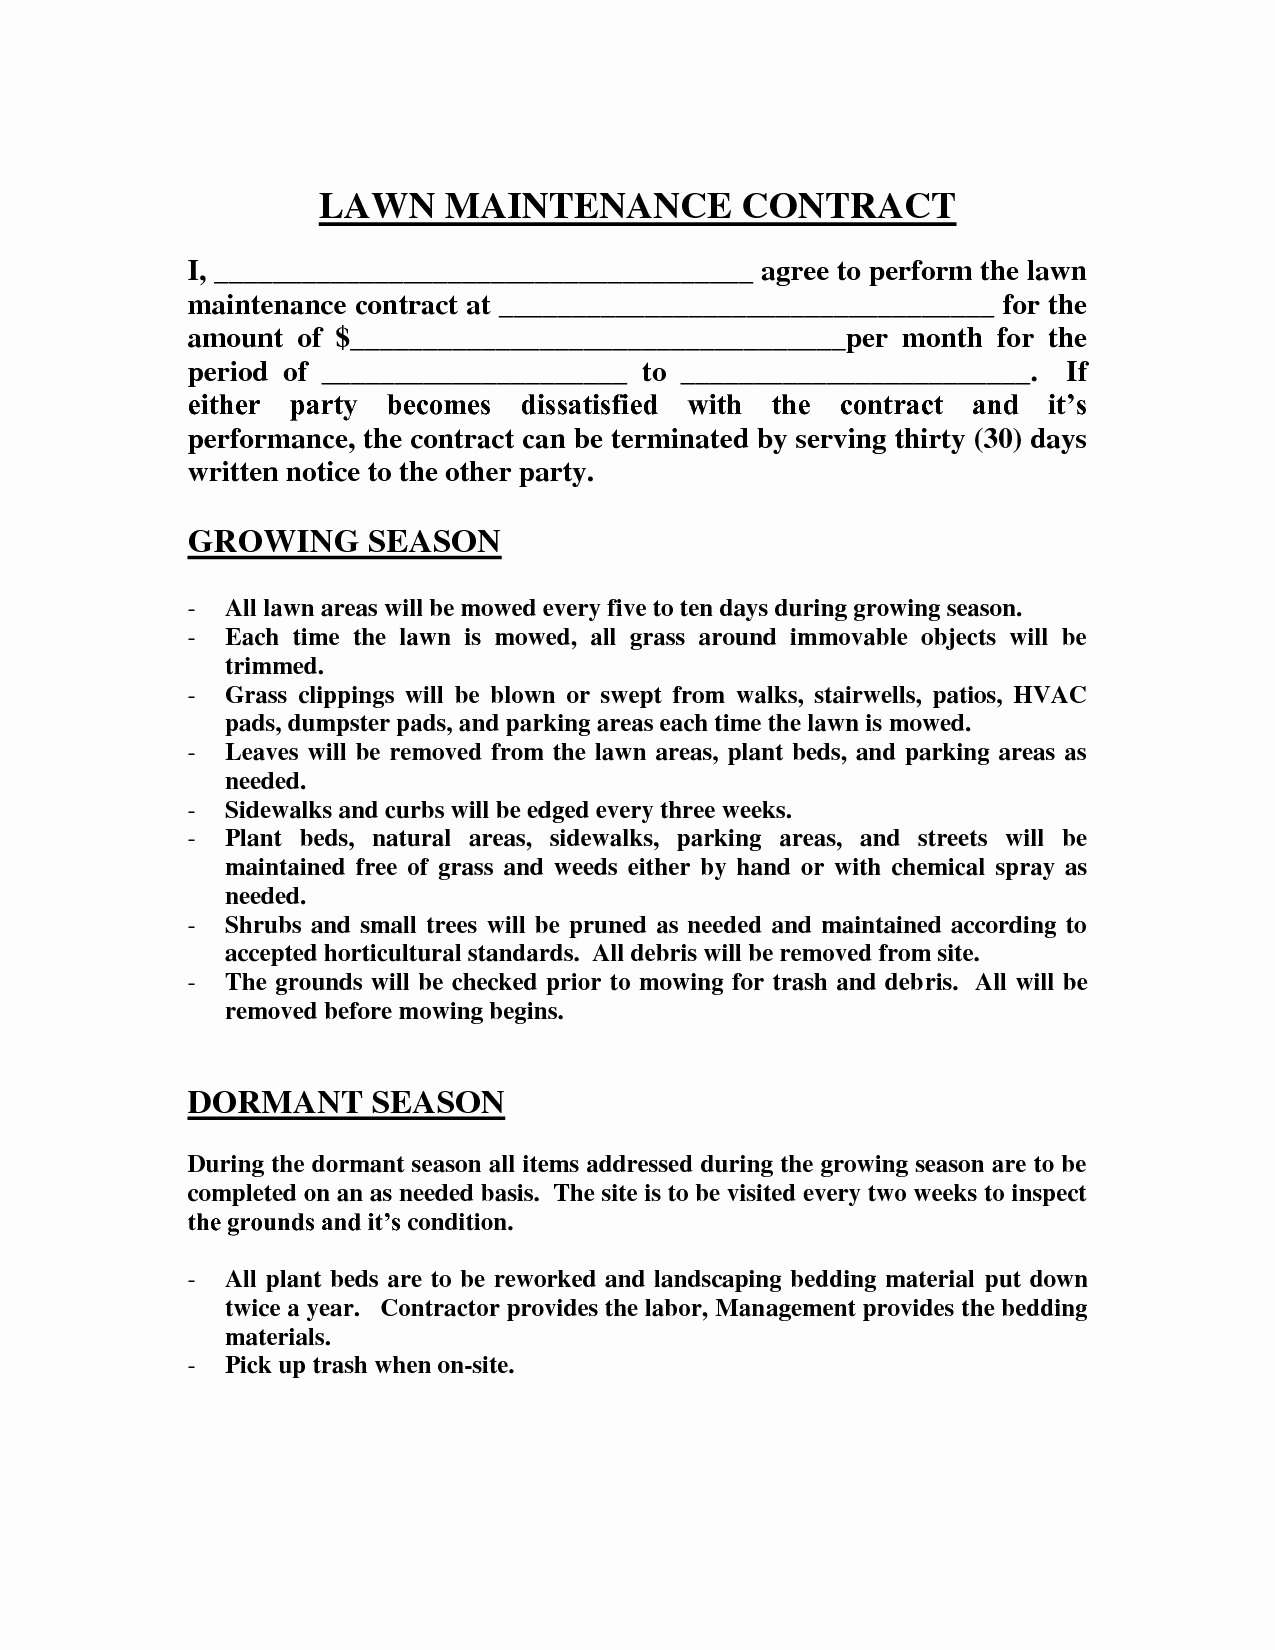 Lawn Service Contract Template Luxury Contract Lawn Care Contract Template Lawn Care Contract